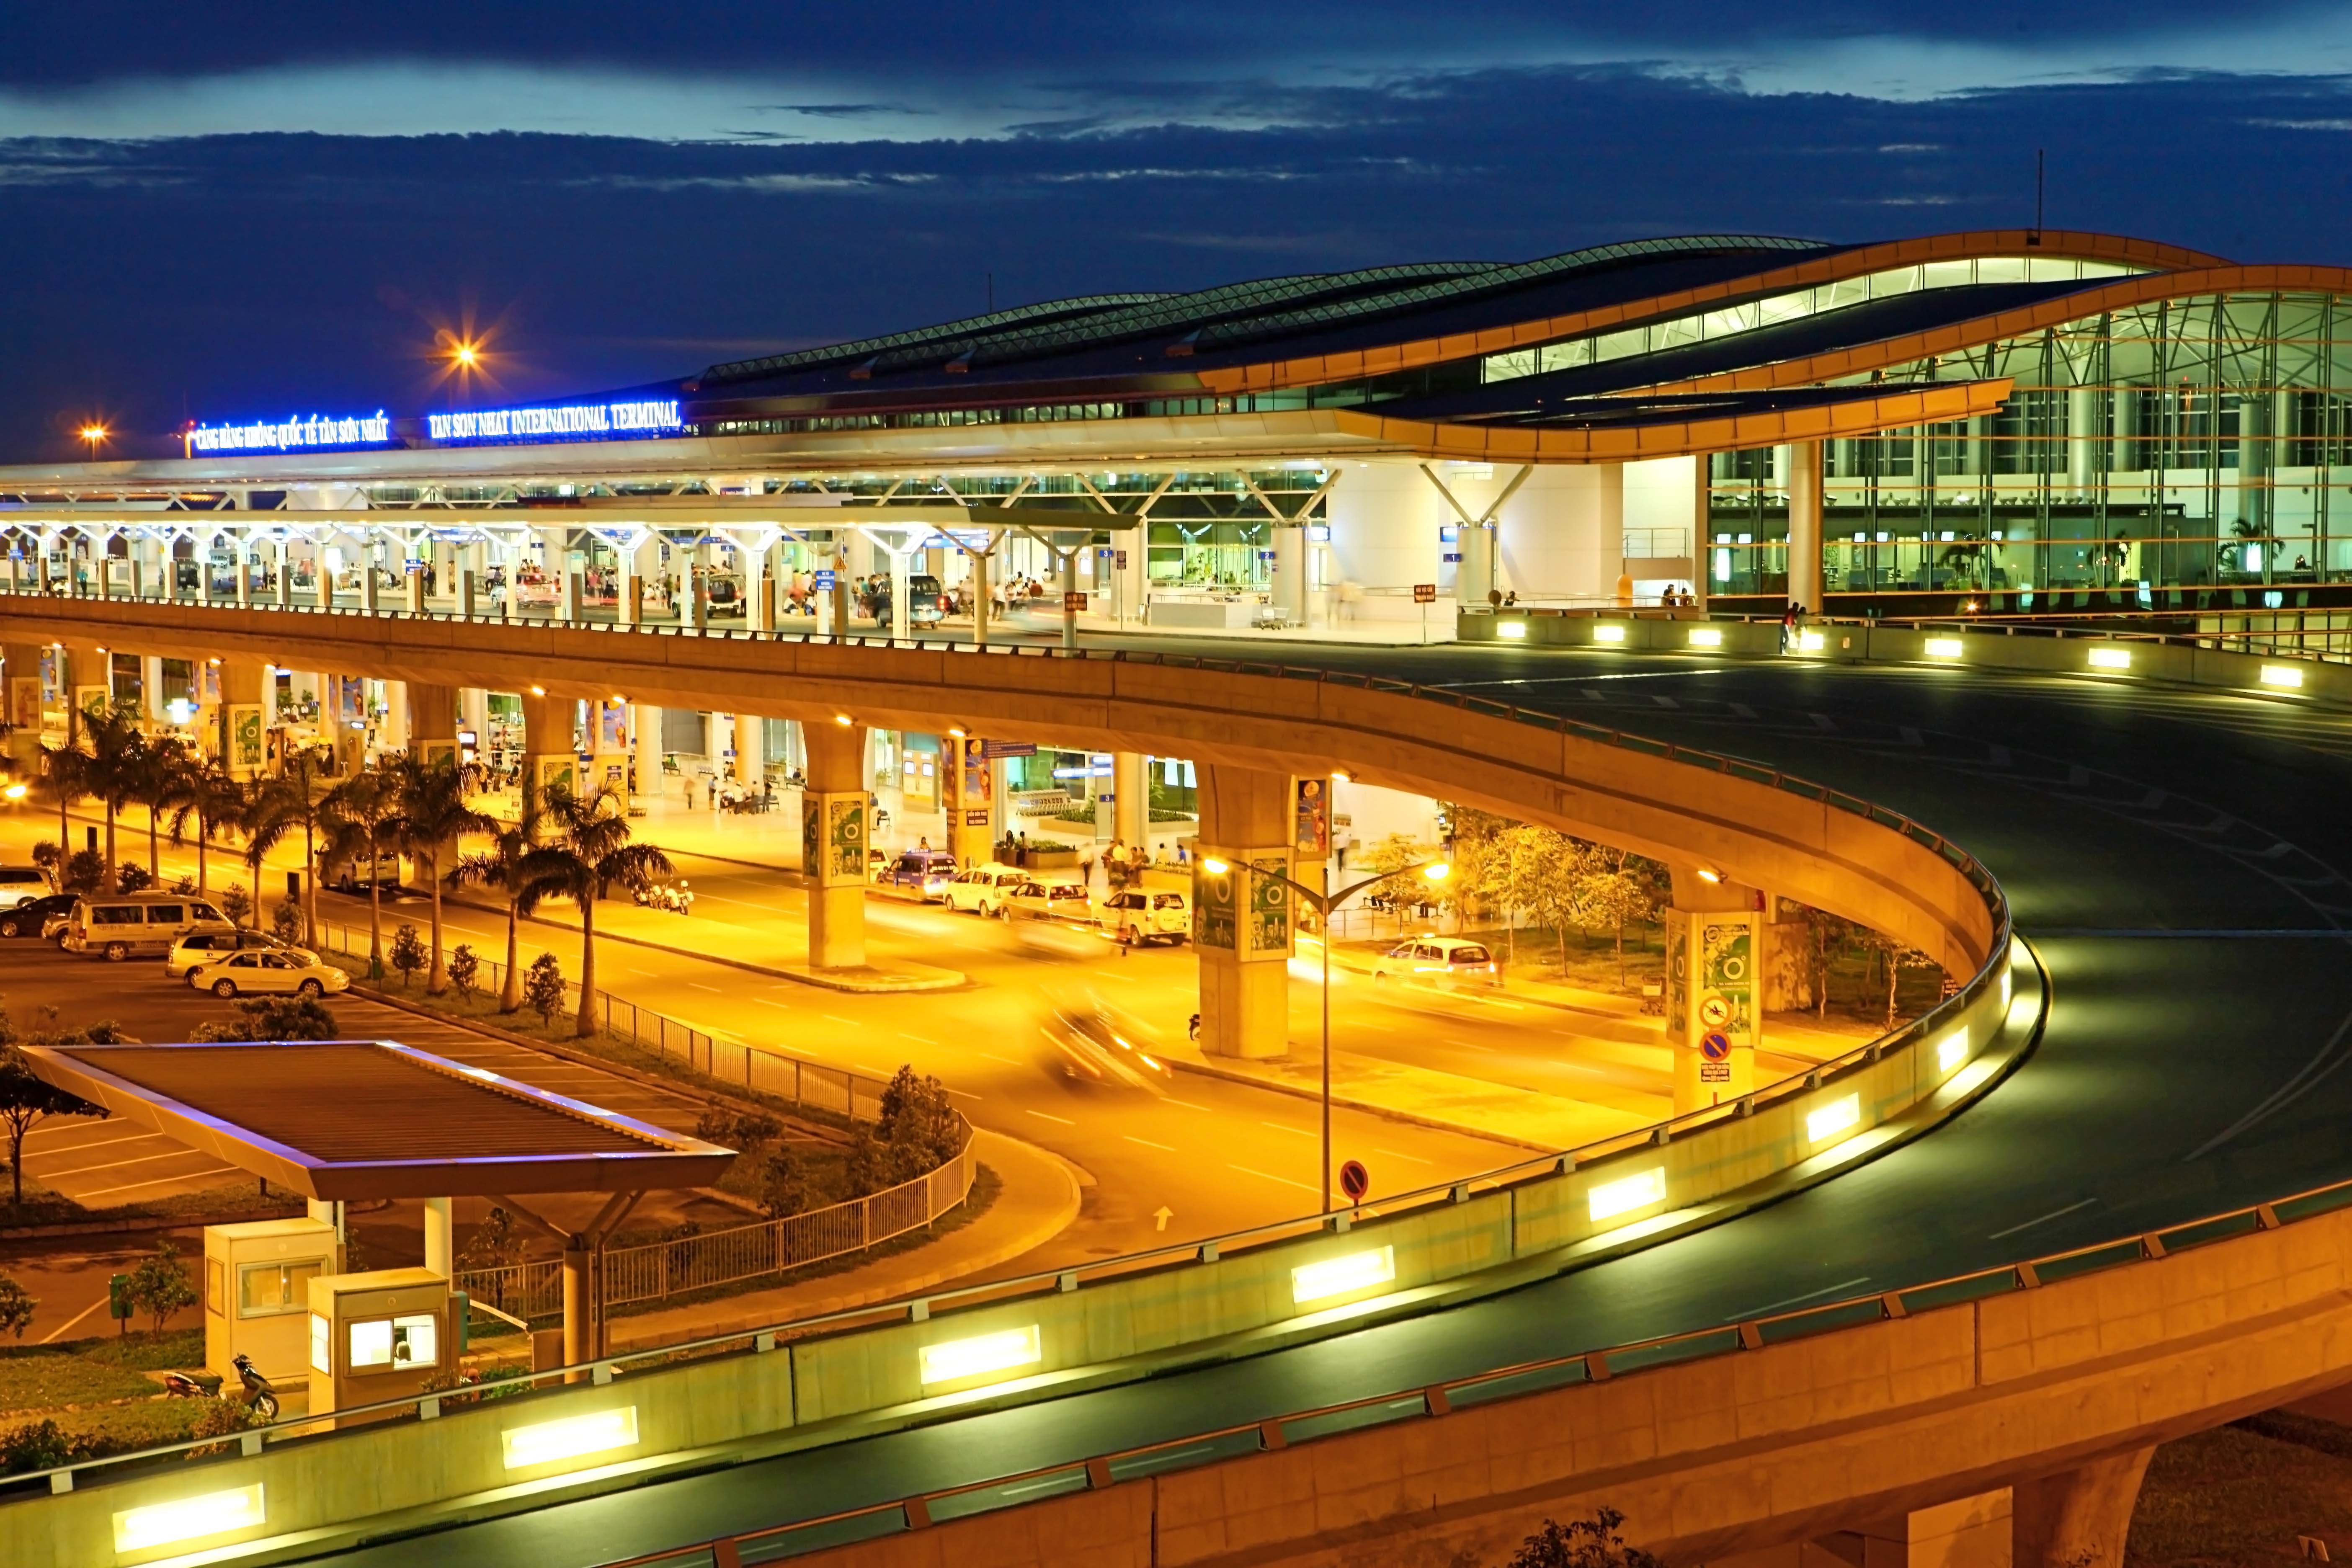 g.2 The-hustle-and-bustle-of-Tan-Son-Nhat-International-Airport-